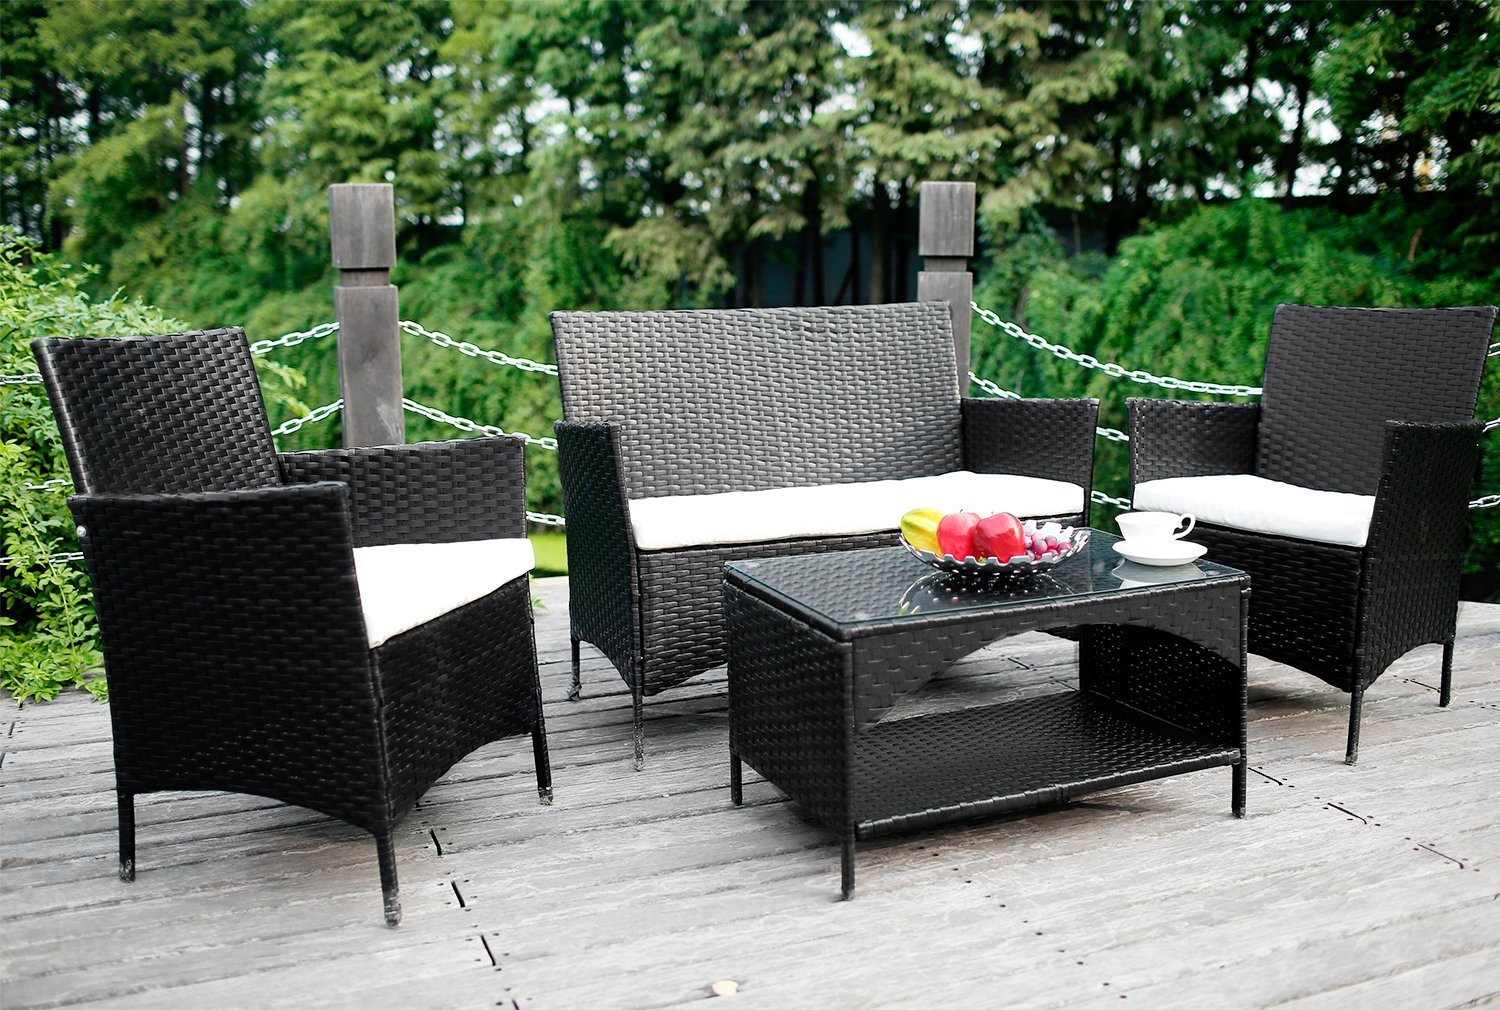 Outdoor Wicker Furniture Ratings Rattan Outdoor Furniture Cushions